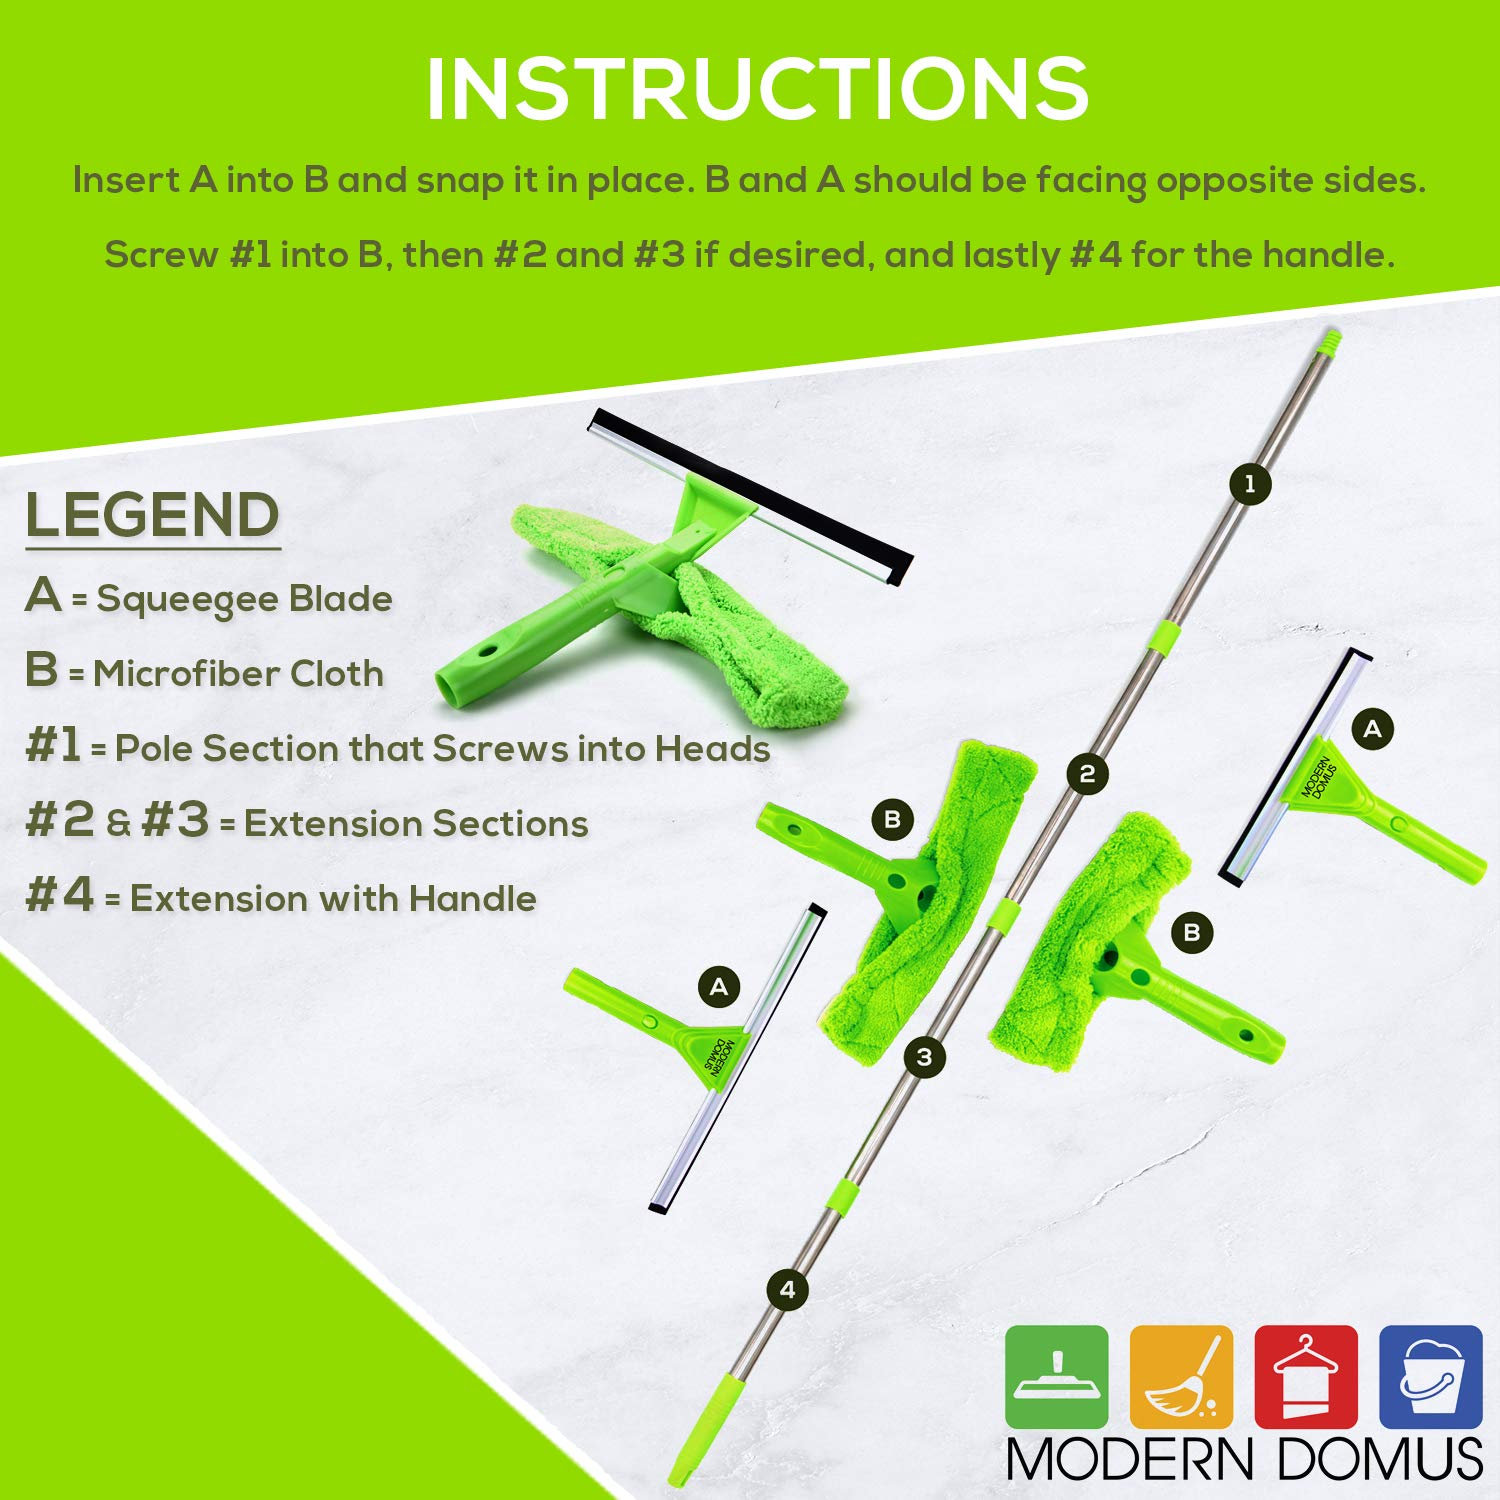 NeverEnding Reach Squeegee Window Cleaner Kit | Shower Squeegee, High Window Cleaning Tools, Car Windshield Tool and Doors - Indoor / Outdoor Washing Equipment with Extension Pole and 4 Washer Heads by Modern Domus (Image #3)